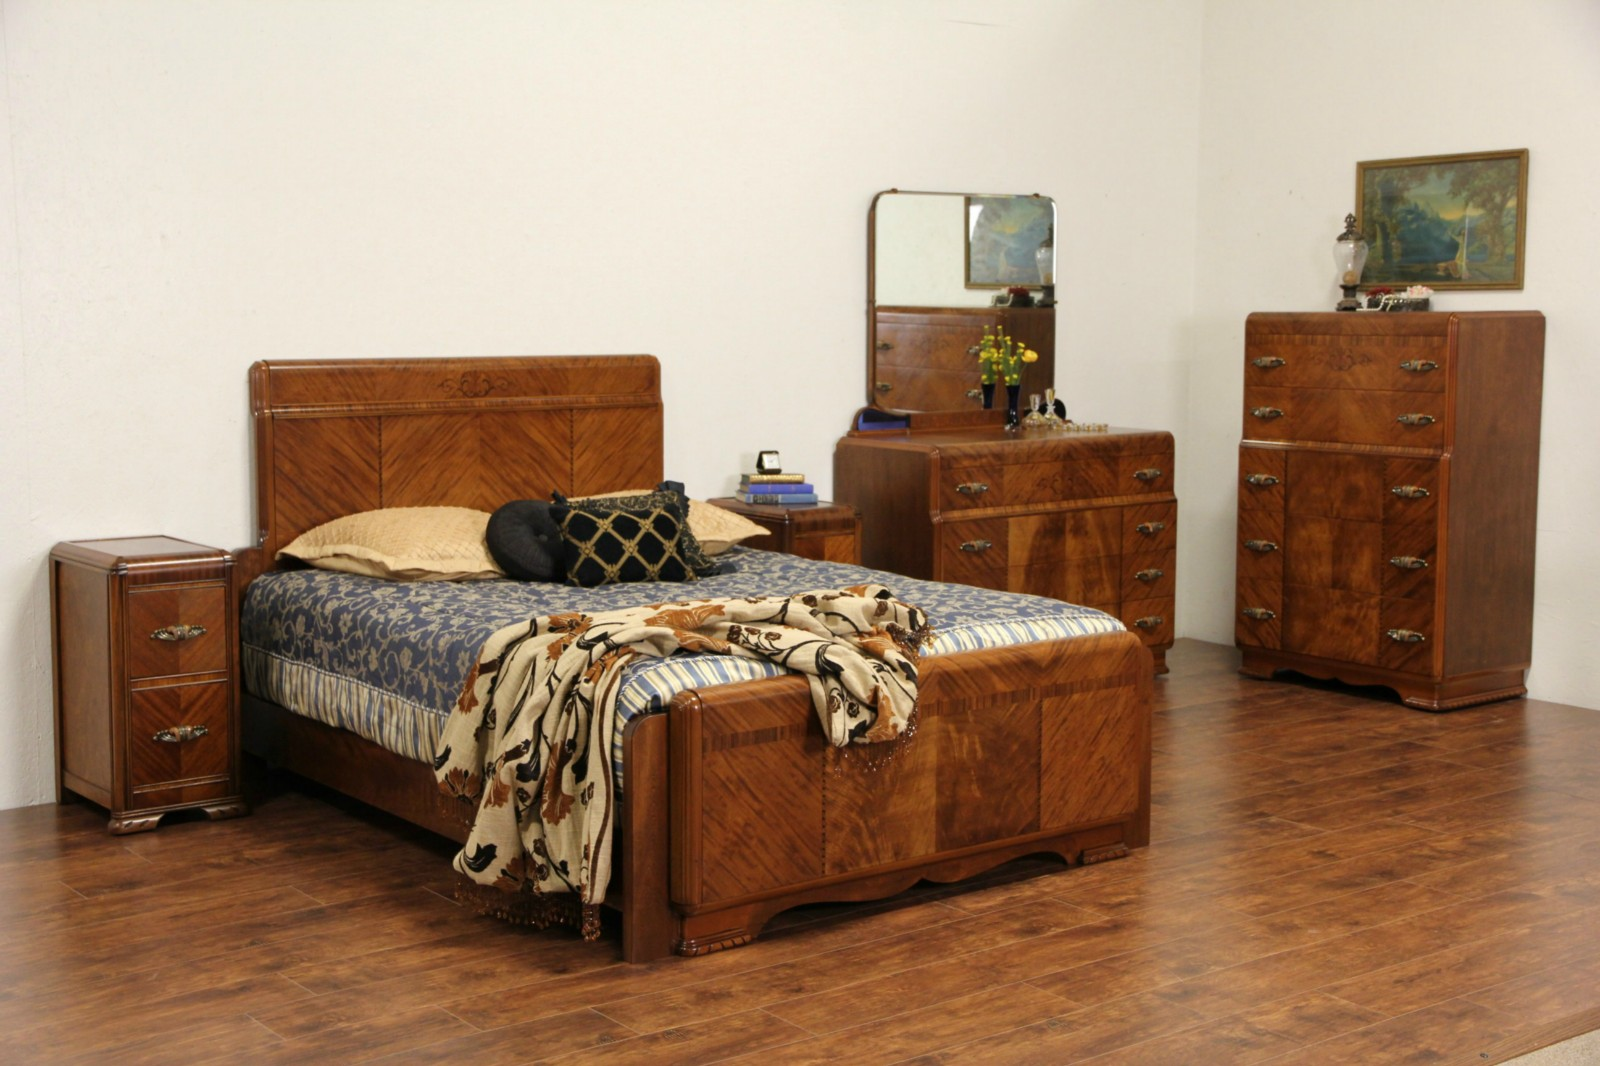 SOLD - Art Deco 1930's Queen Size Waterfall 5 Pc. Bedroom Set ...